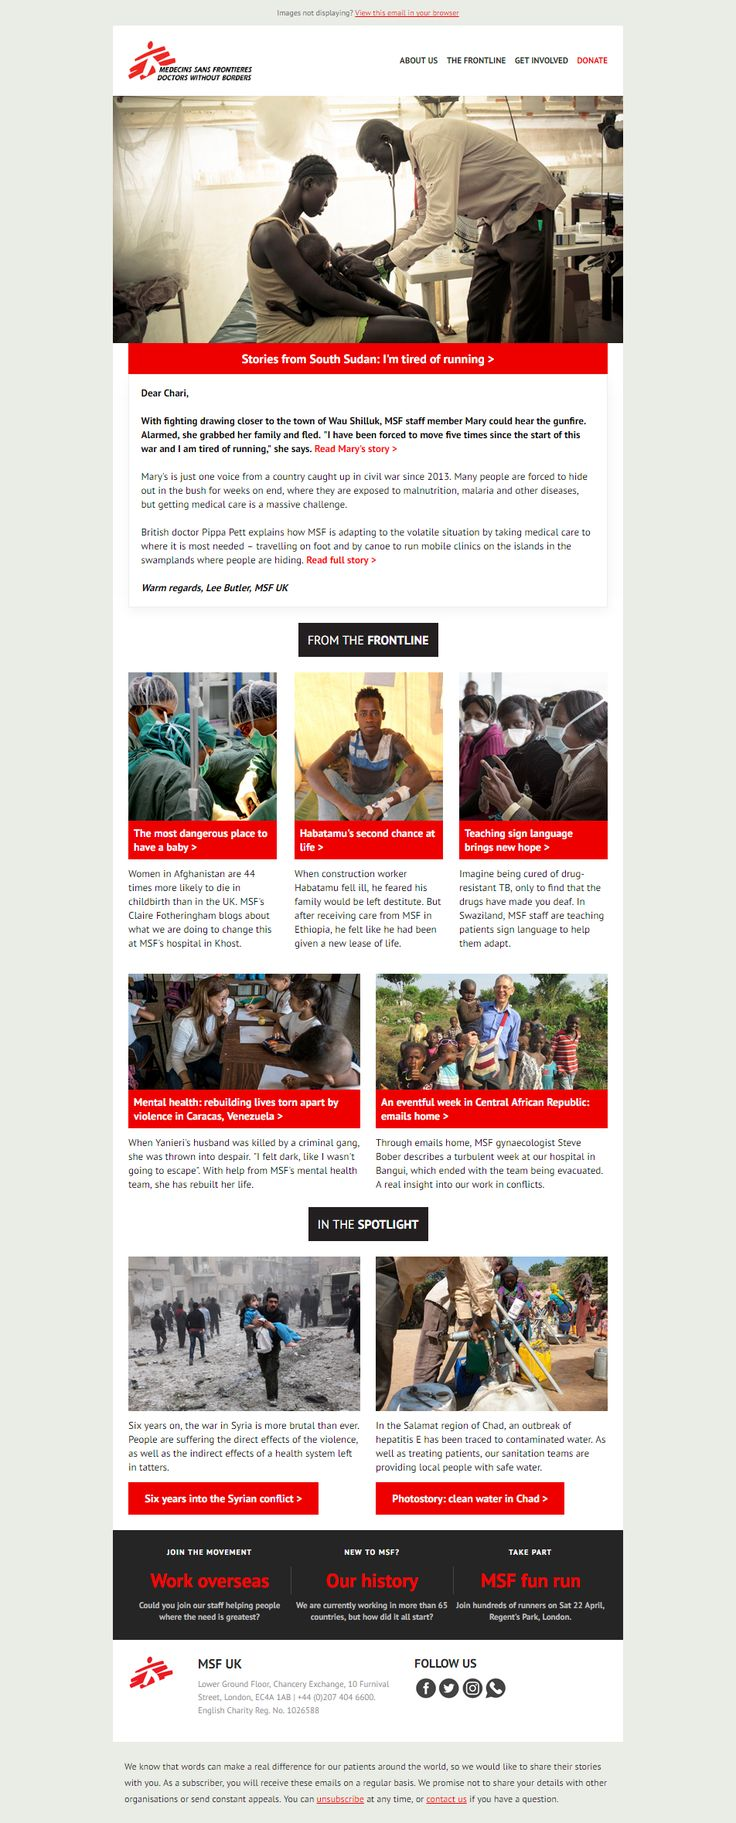 MSF UK: In your monthly e-news: tired of running in South Sudan | sign language brings hope in Swaziland | Syria conflict six years on | and more